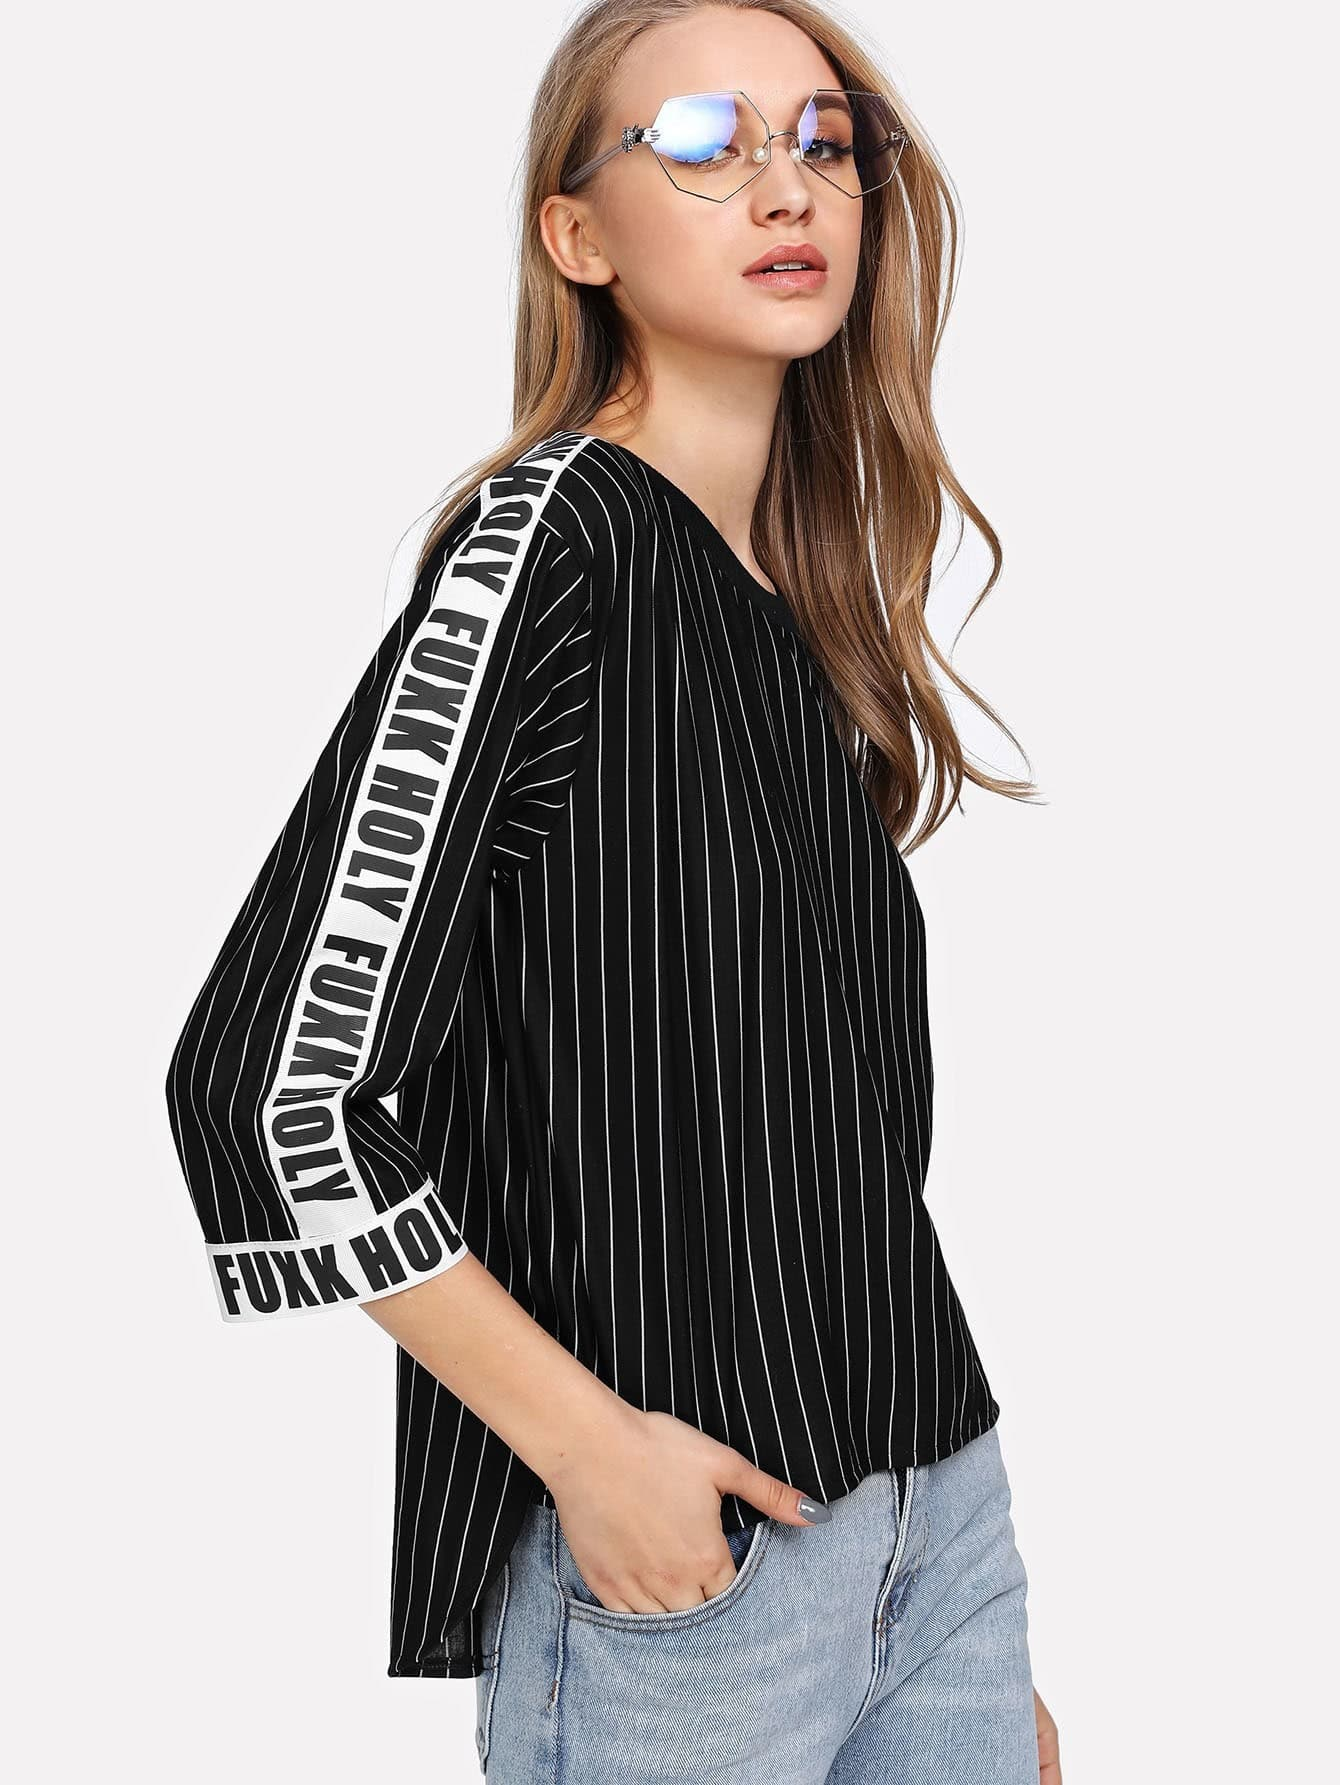 Printed Tape Detail Pinstripe Top pearl detail layered frill sleeve top